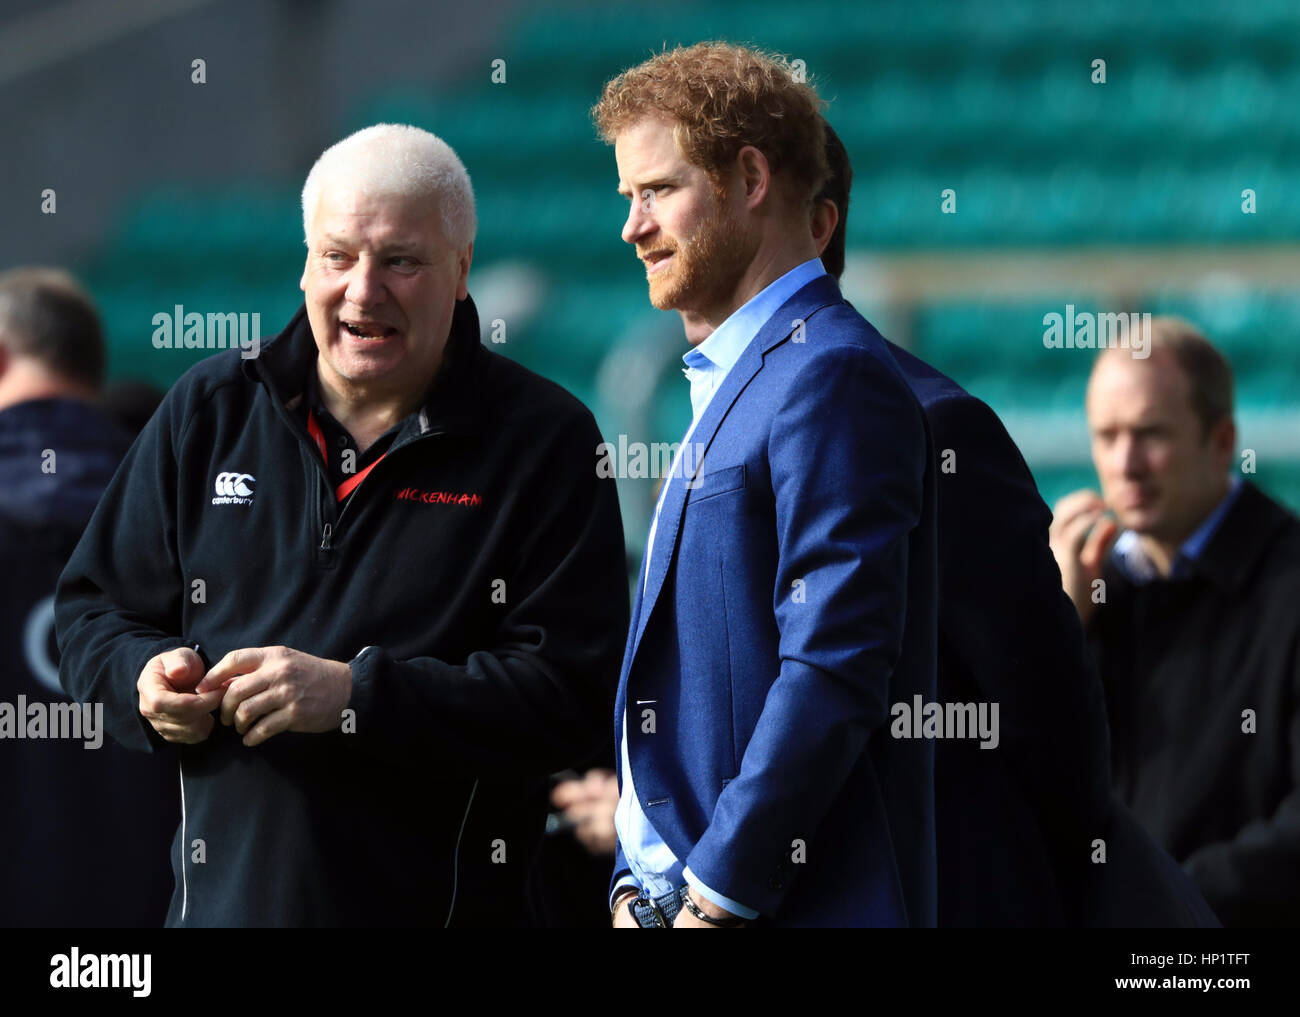 Prince Harry, Patron of the Rugby Football Union (RFU) attends an England Rugby training session at Twickenham Stadium, - Stock Image